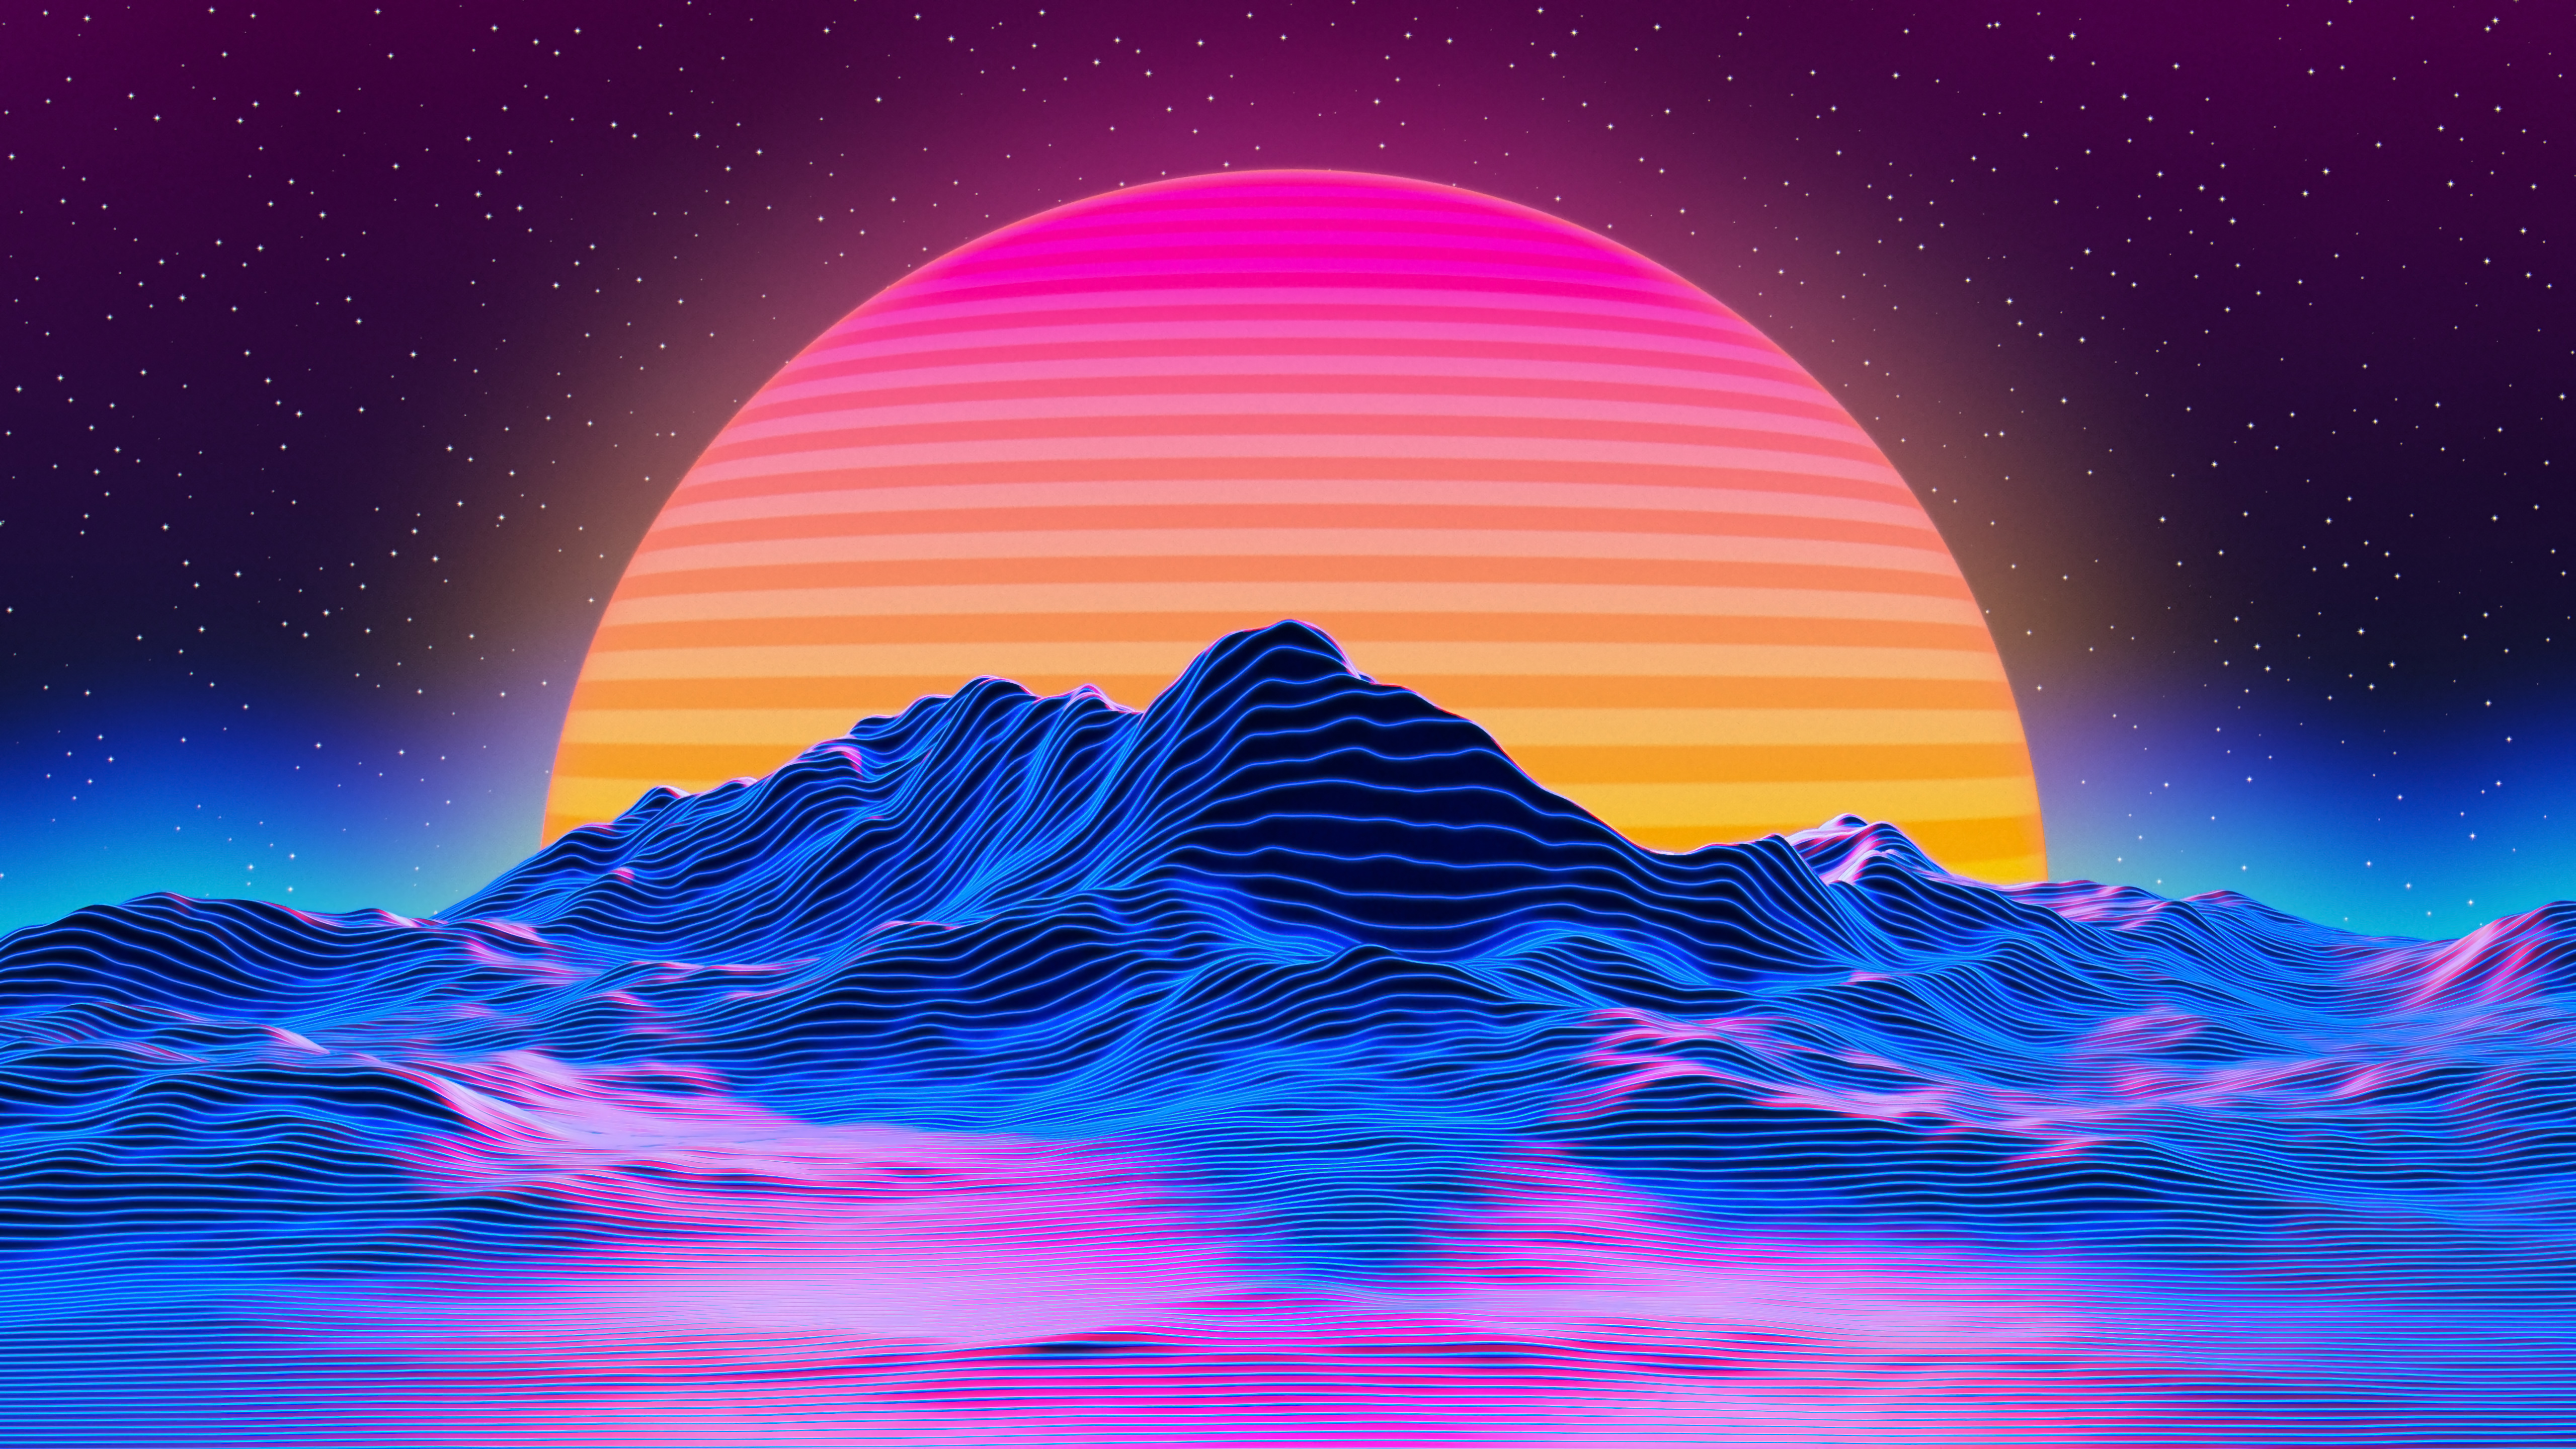 Wallpaper Retrowave mountains of star lines and sun